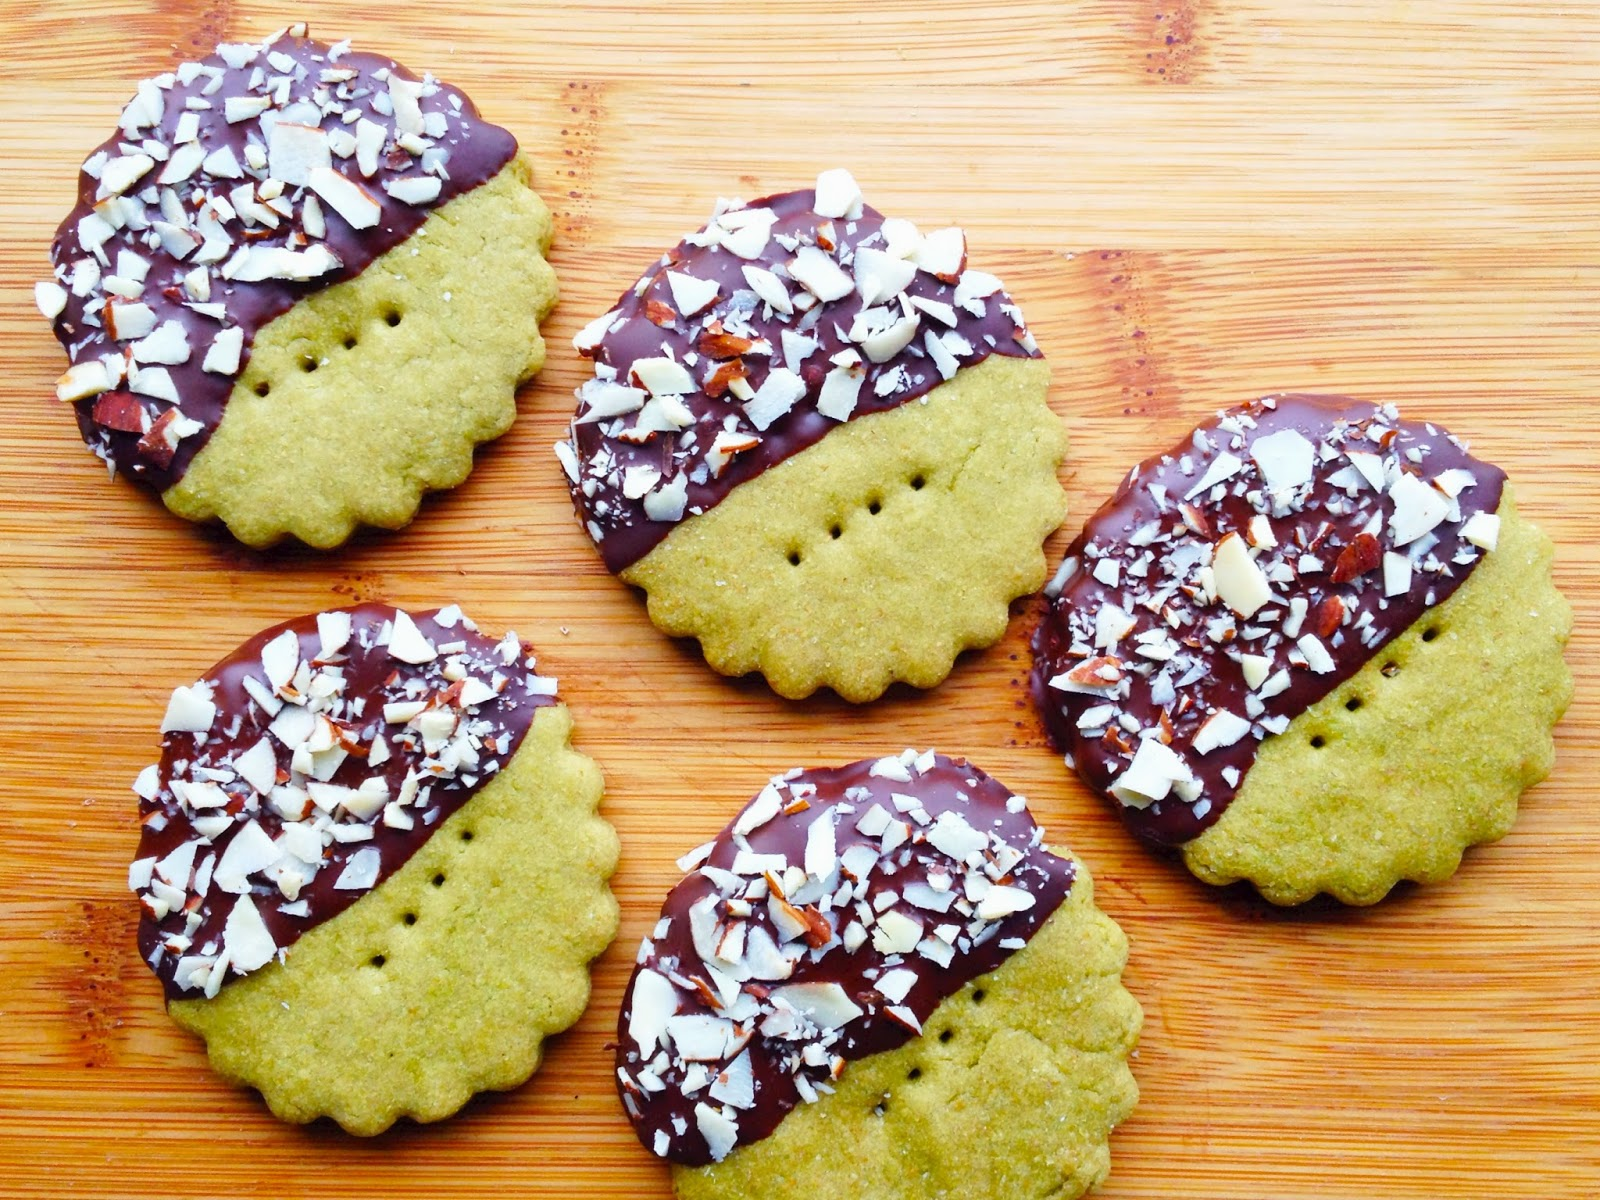 Wholly Vegan: Chocolate-Dipped Matcha Green Tea Shortbread Cookies